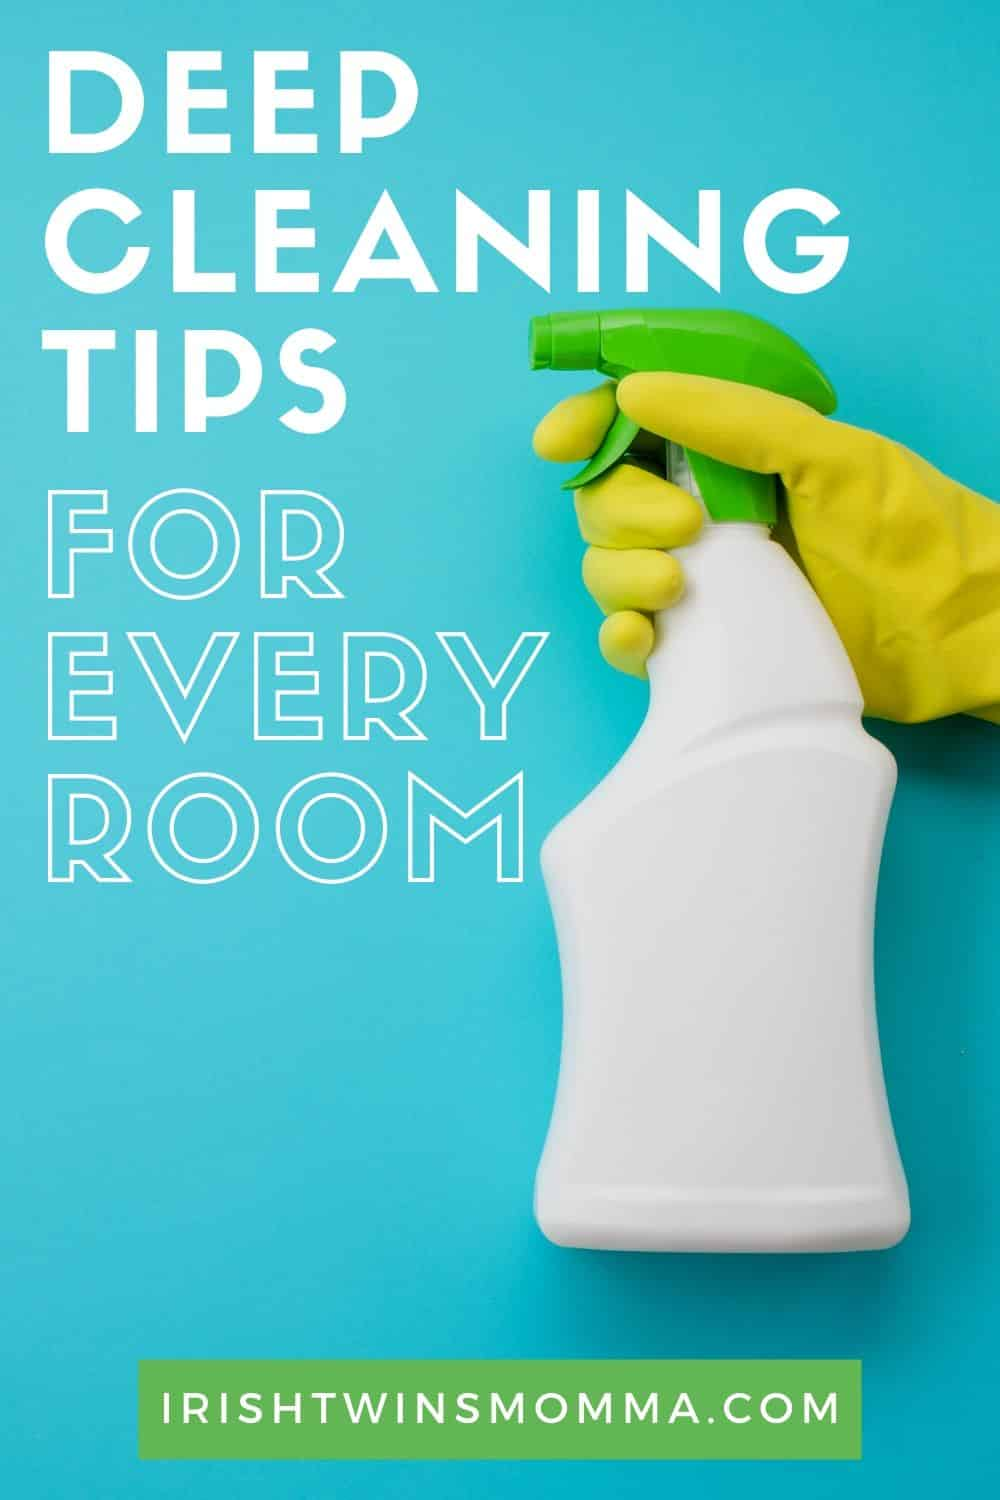 Deep Cleaning Tips for Every Room of the House